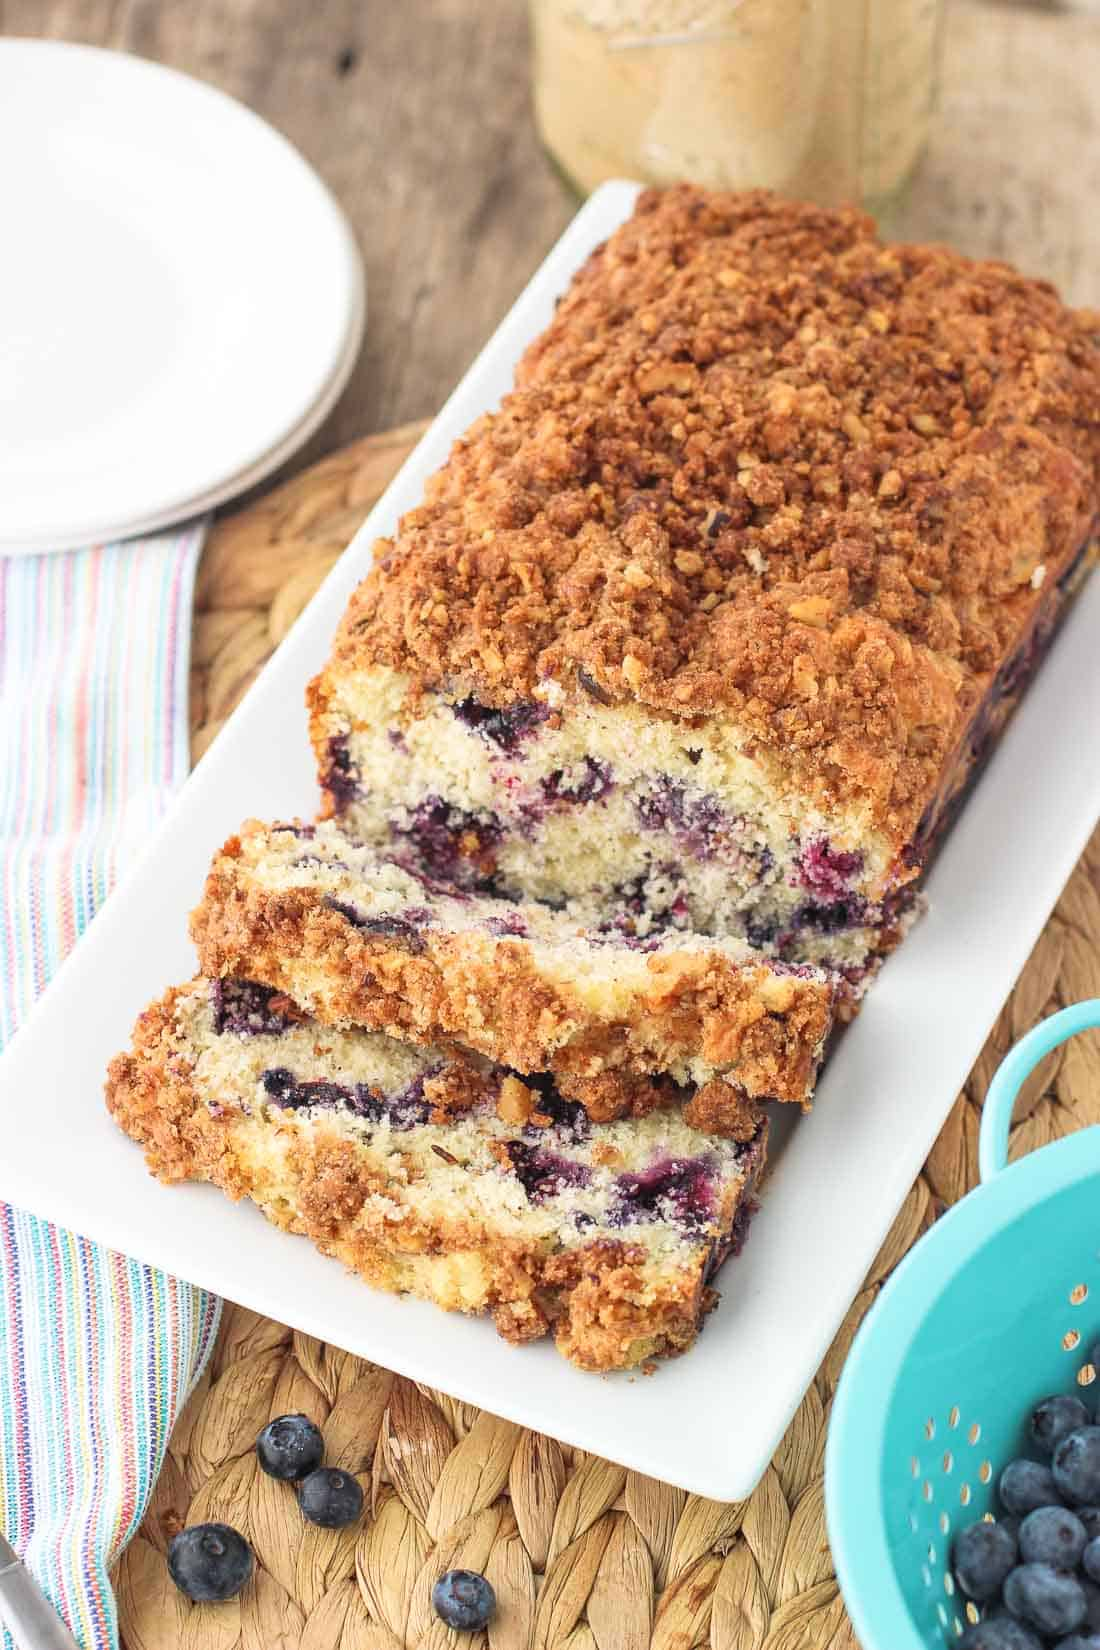 A loaf of half-sliced blueberry muffin bread on a rectangular tray.